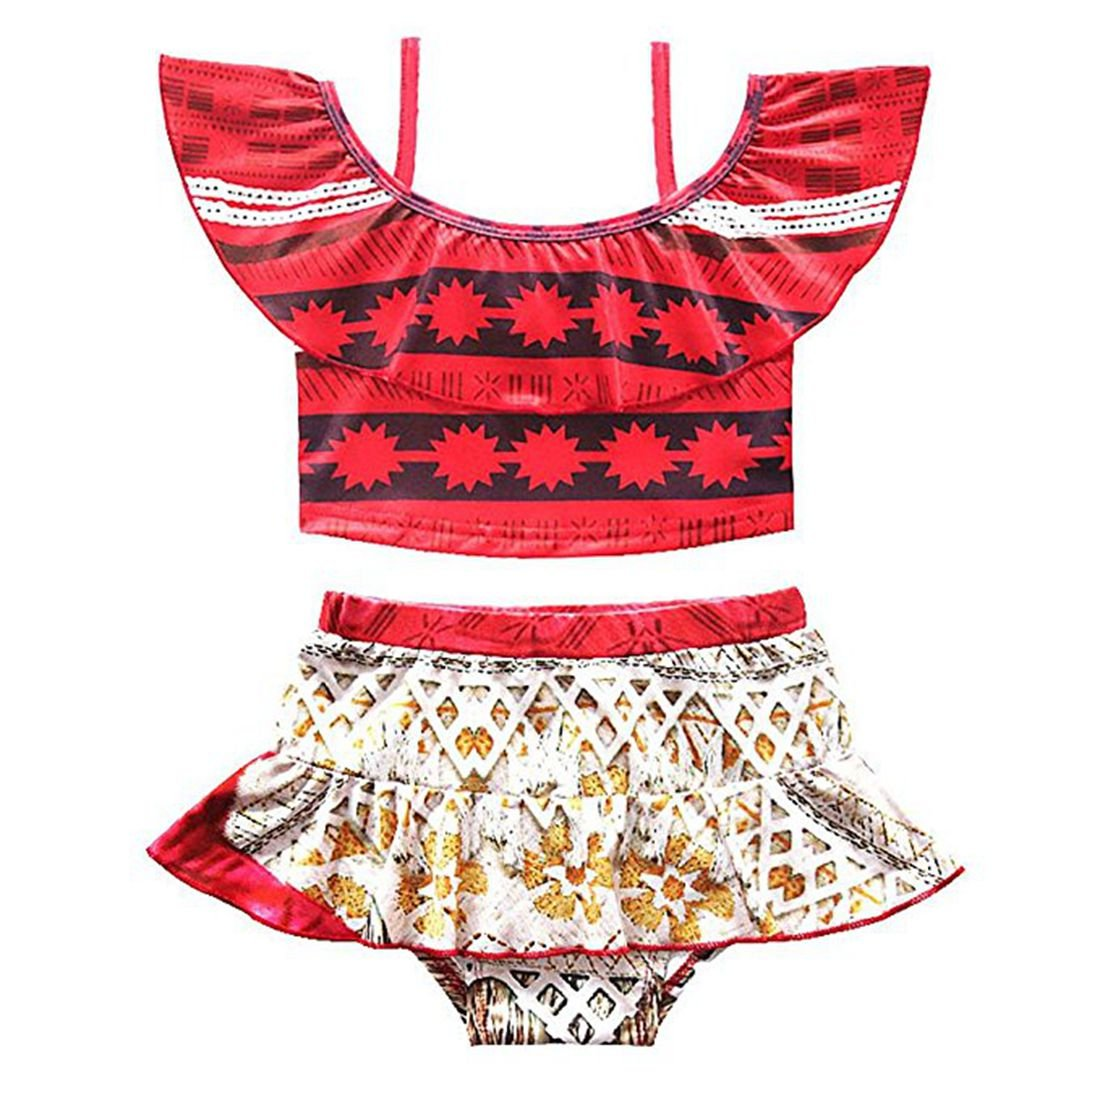 YiZYiF Kids Girls Two Pieces Ruffles Mona Adventure Swimsuit Swimwear Tankini Outfit Set Red 4-5 by YiZYiF